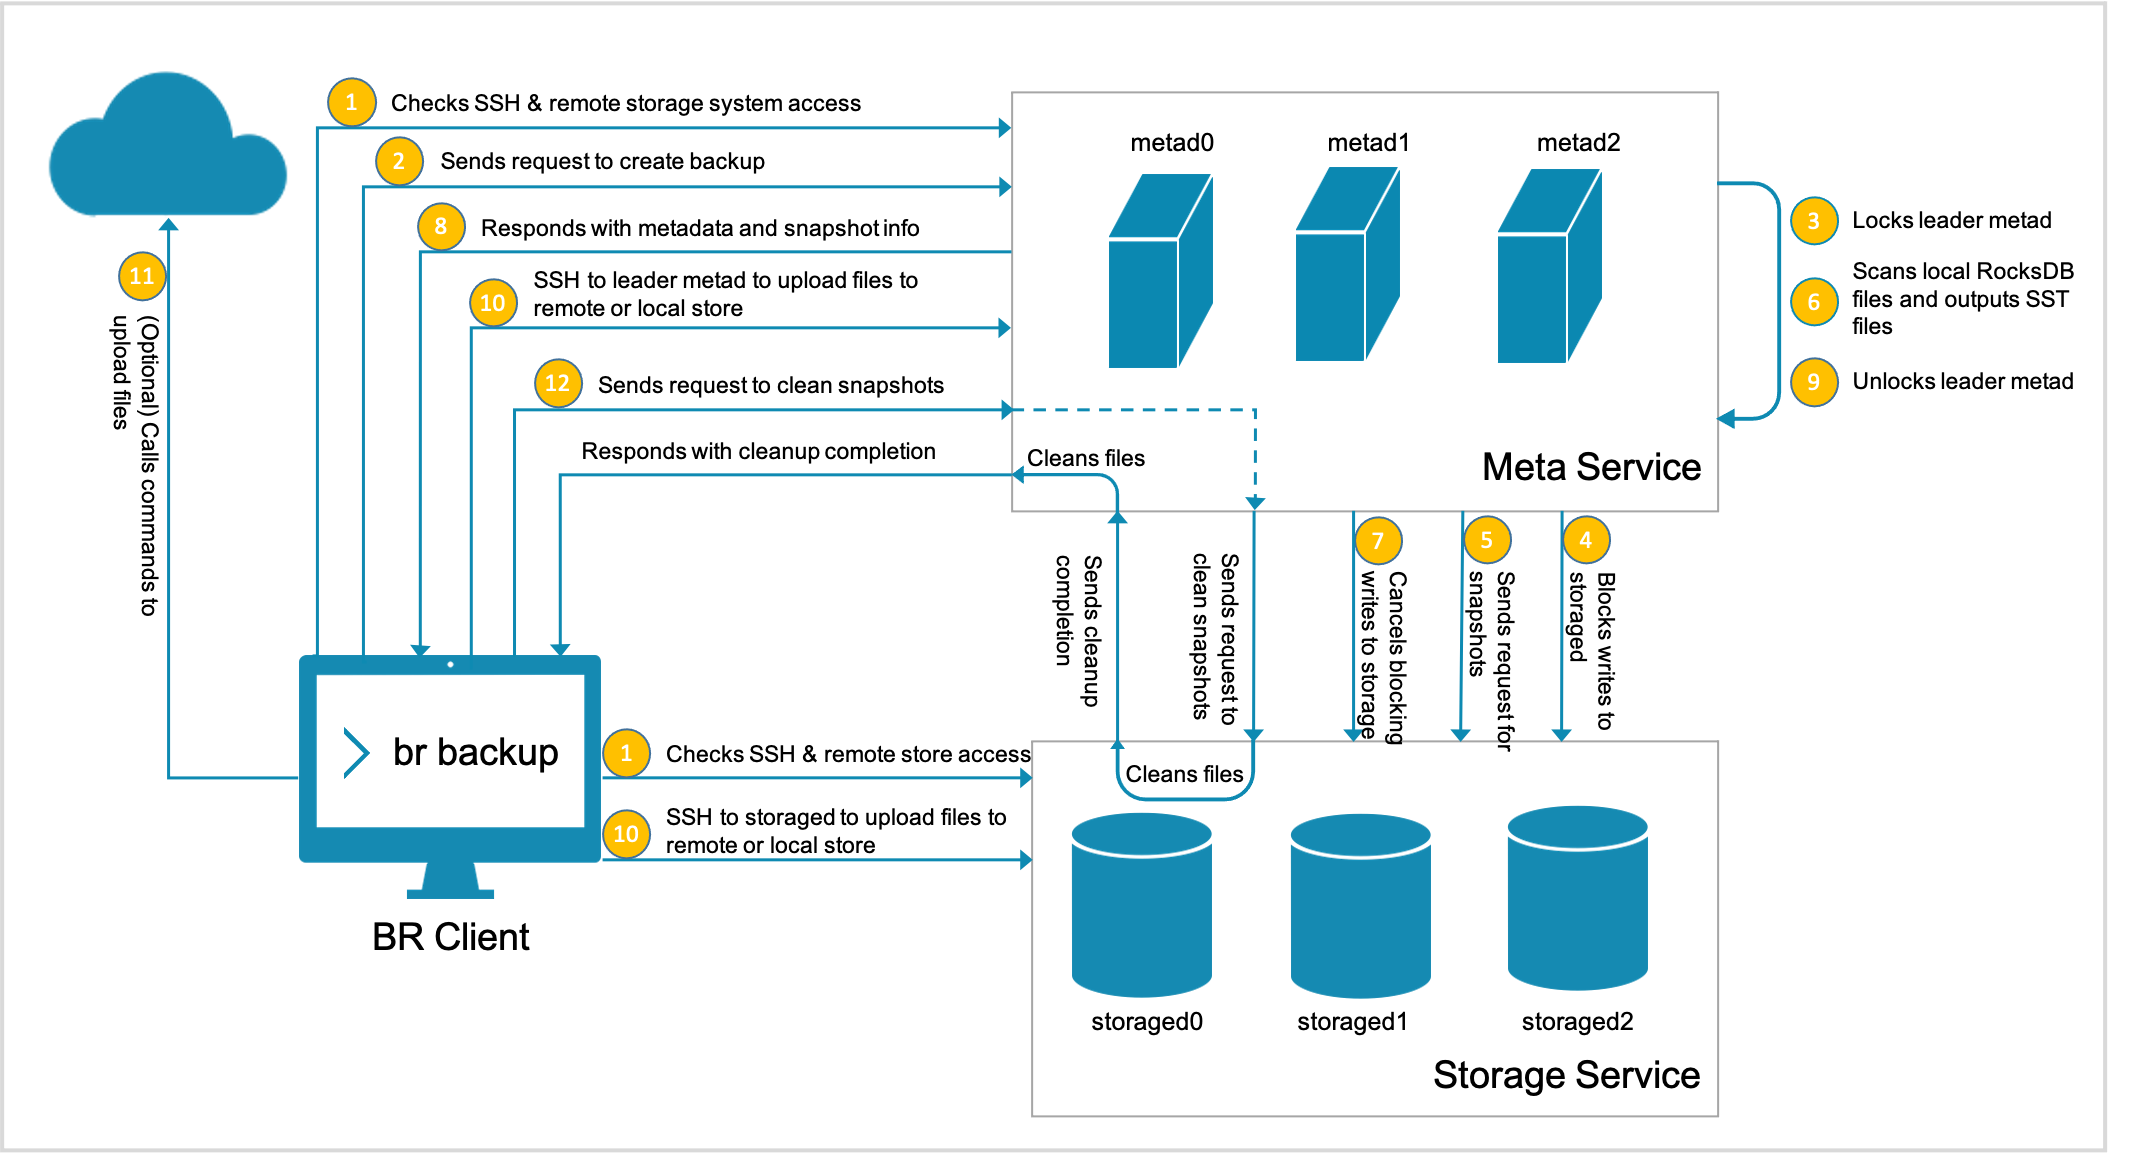 The figure shows the backup procedure